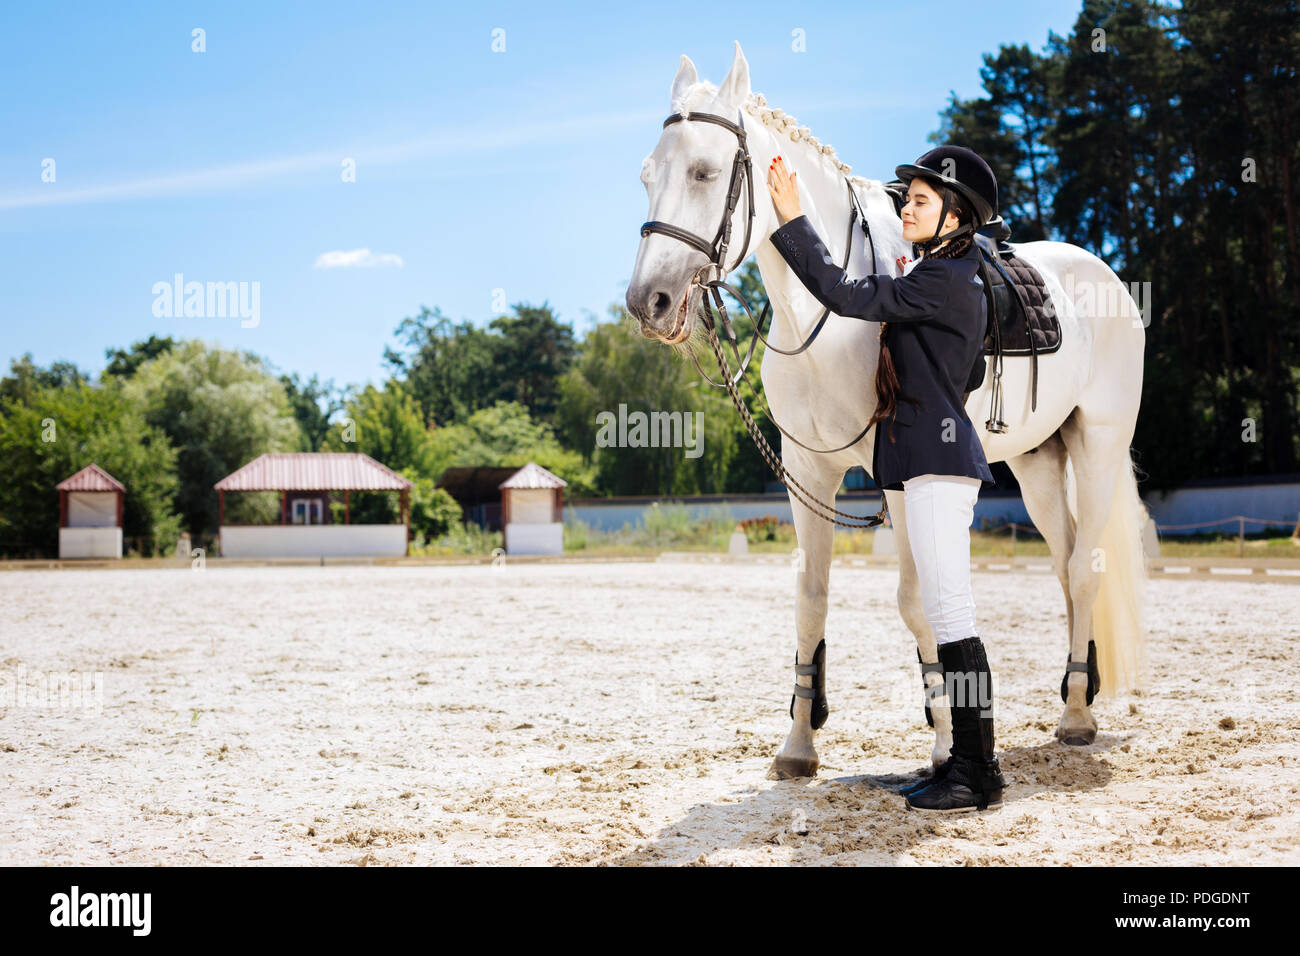 Female rider wearing white trousers and riding boots - Stock Image